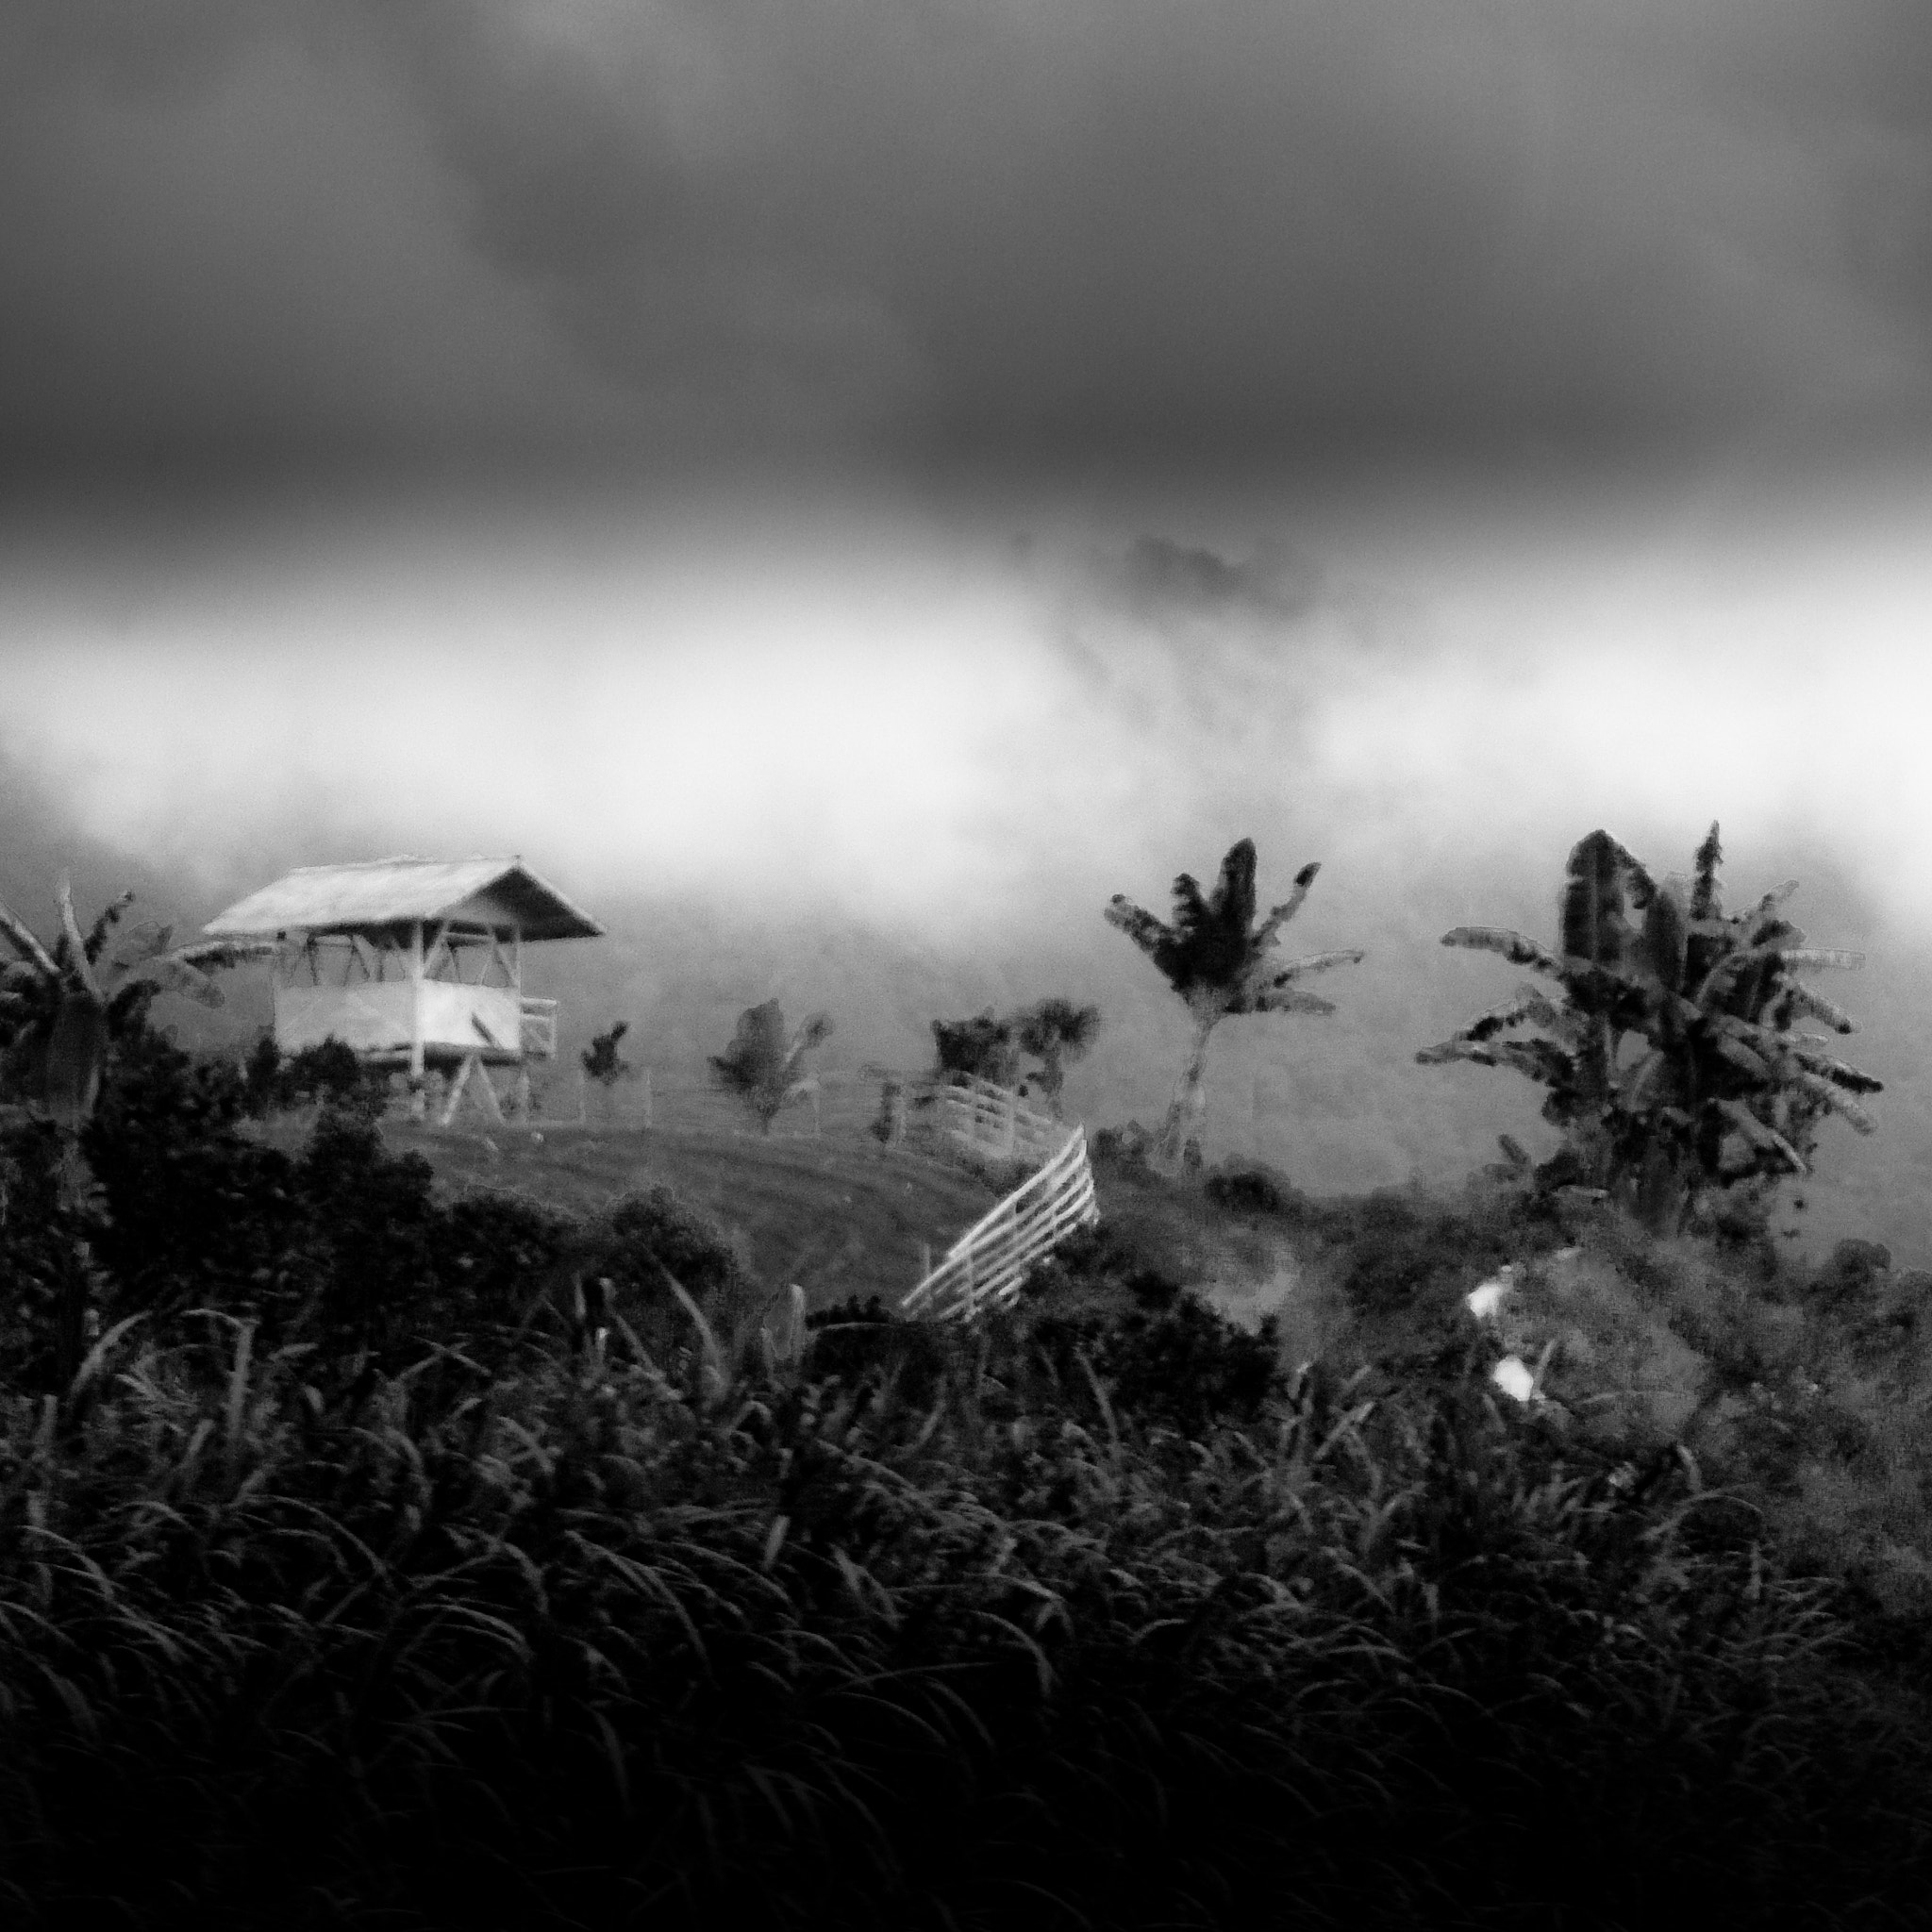 Photograph Hut in mist - Java by Olivier Bergeron on 500px